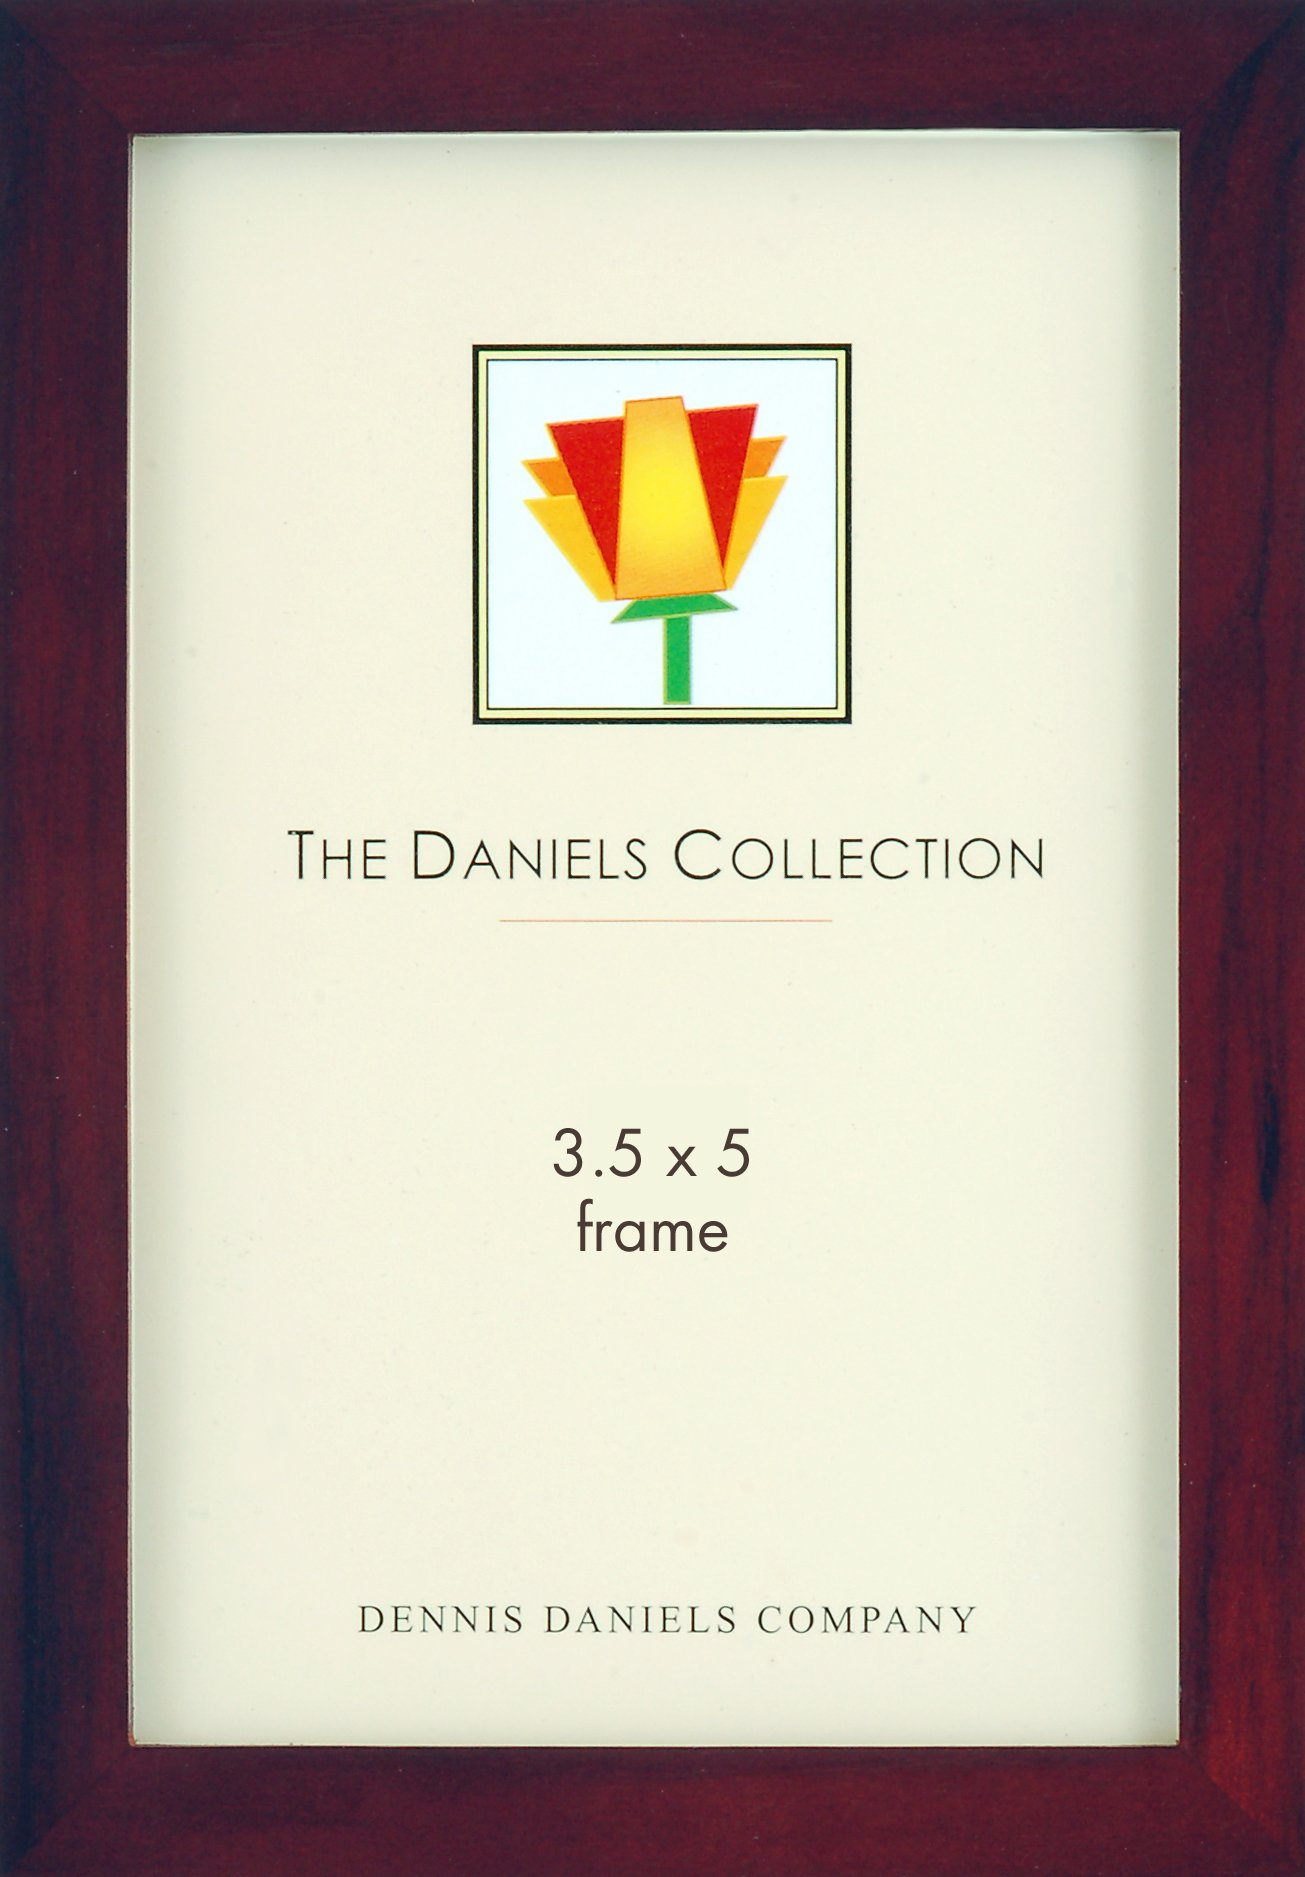 Dennis Daniels Gallery Woods Picture Frame, 3.5 x 5